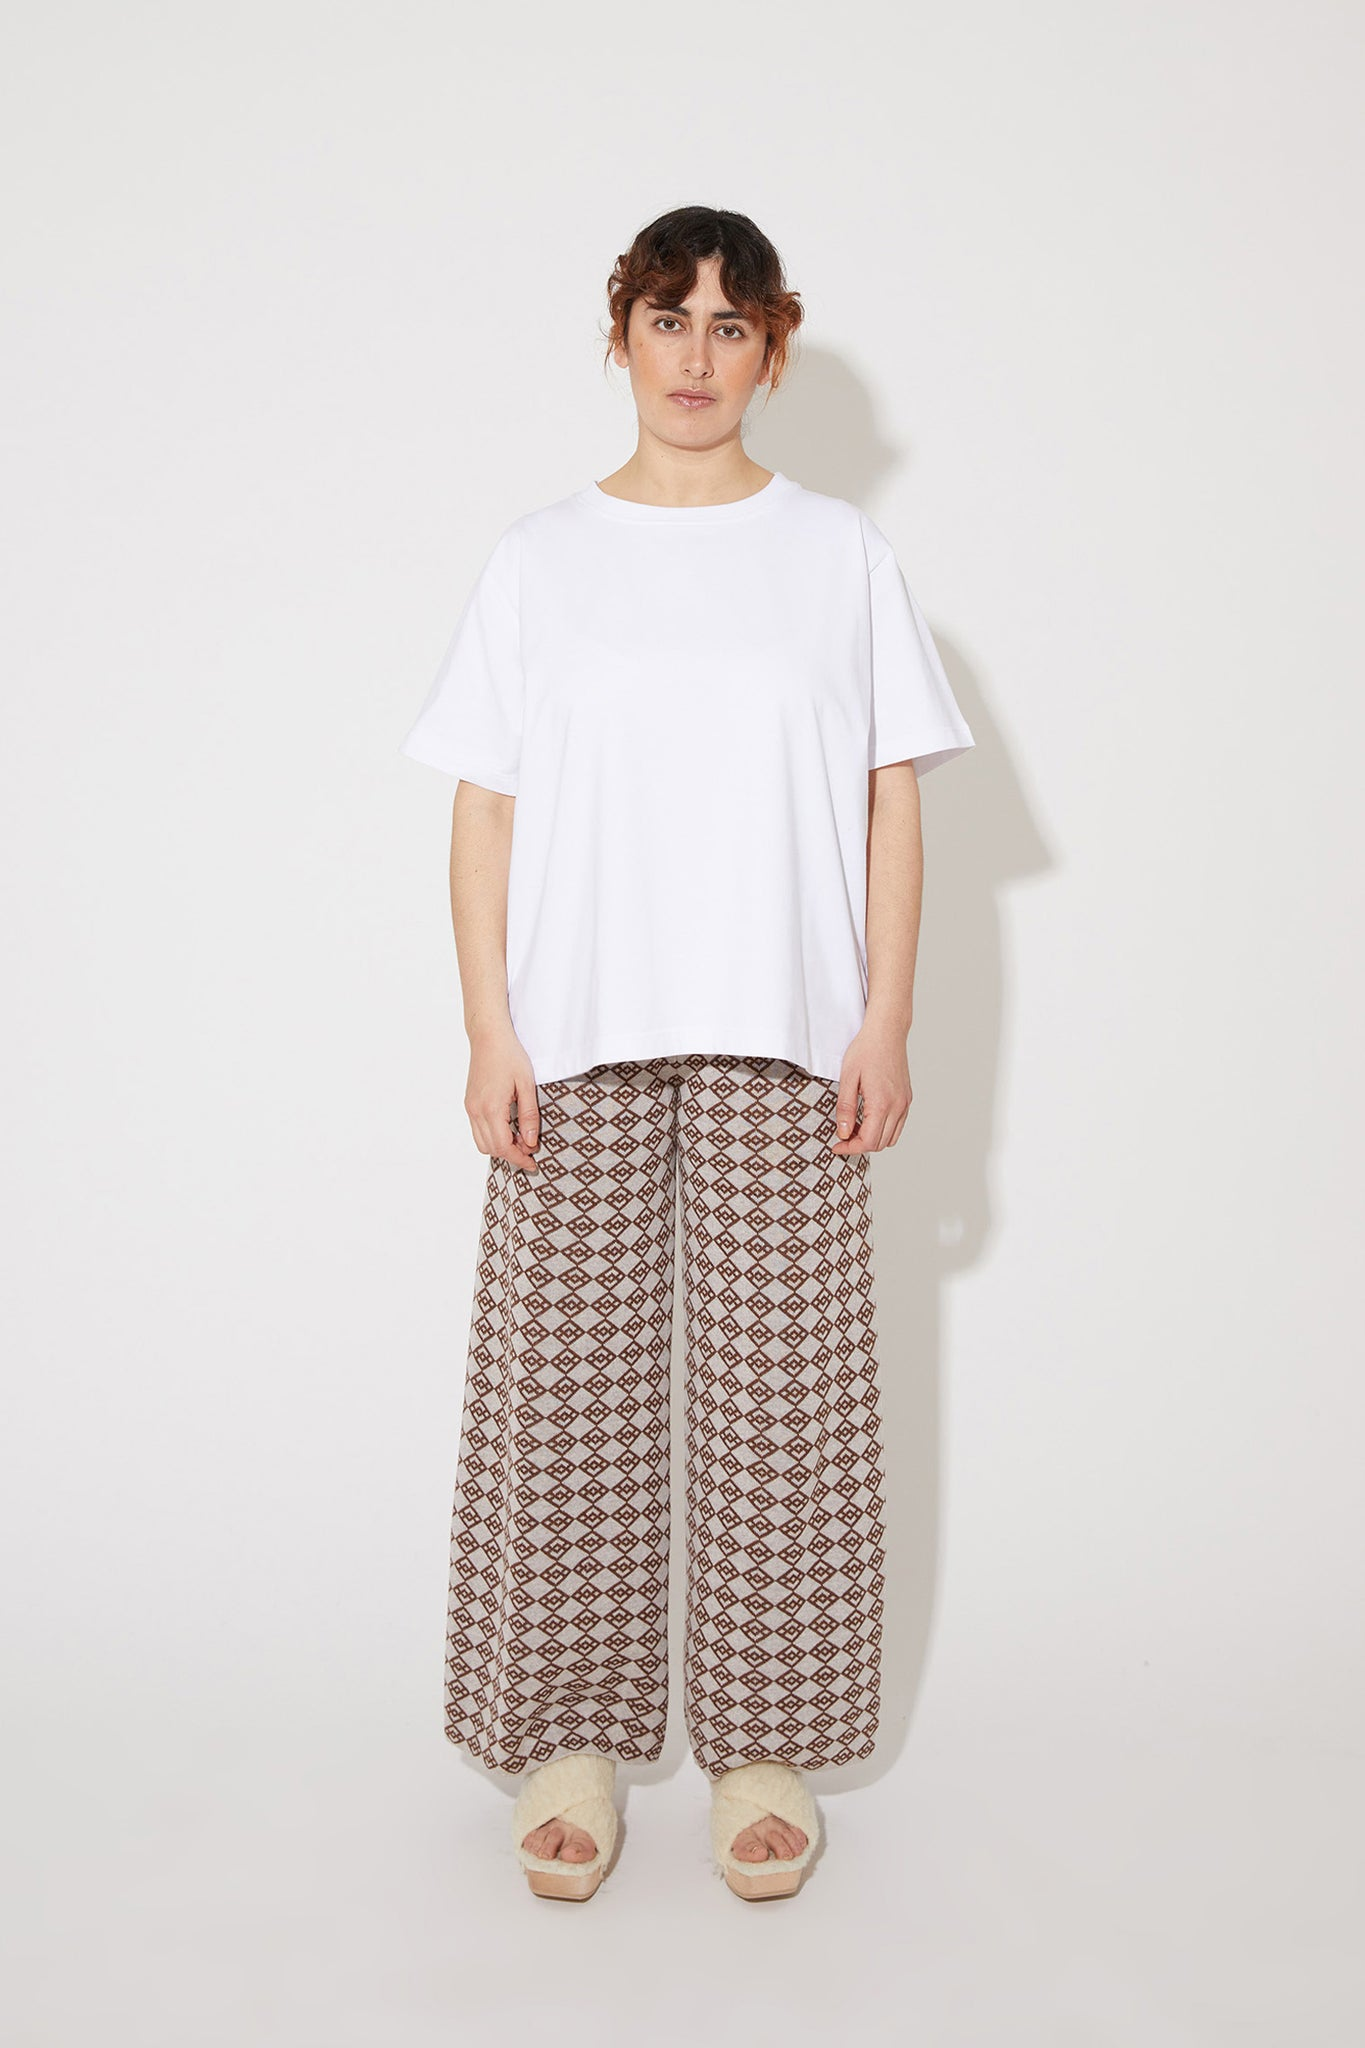 Seela t-shirt in white